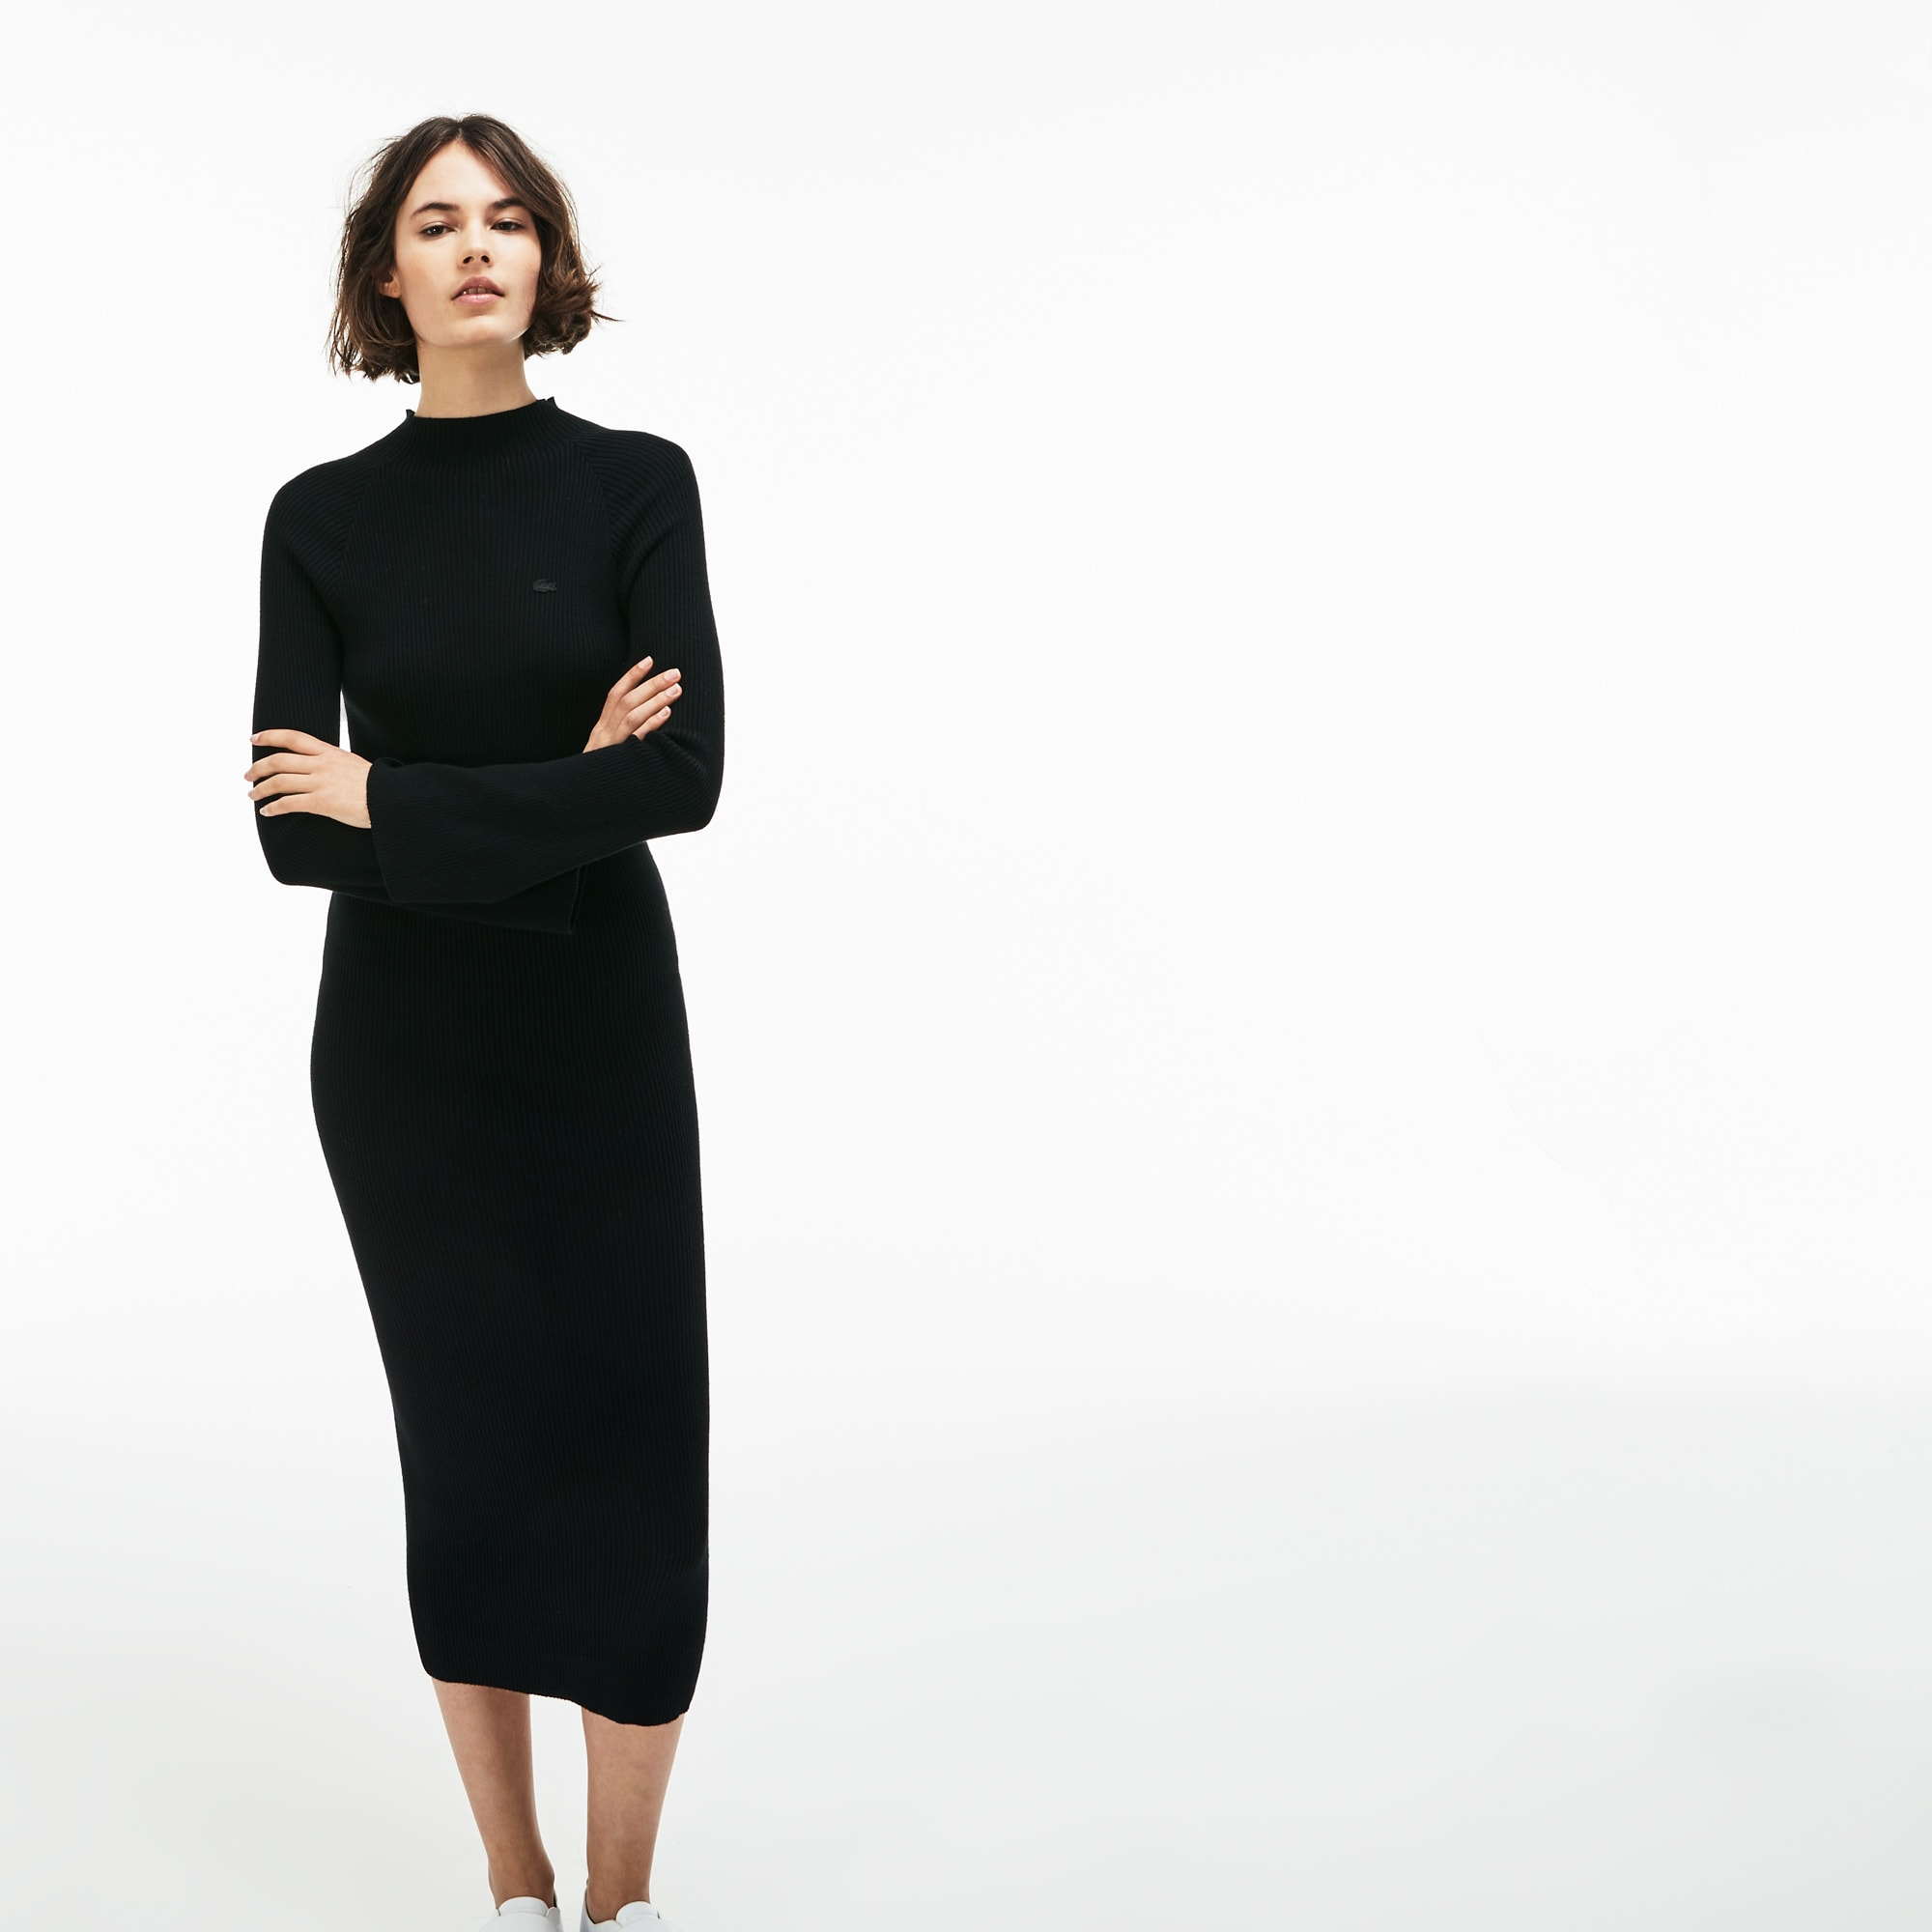 Women's LIVE Close-Fitting Ribbed Cotton And Cashmere Dress